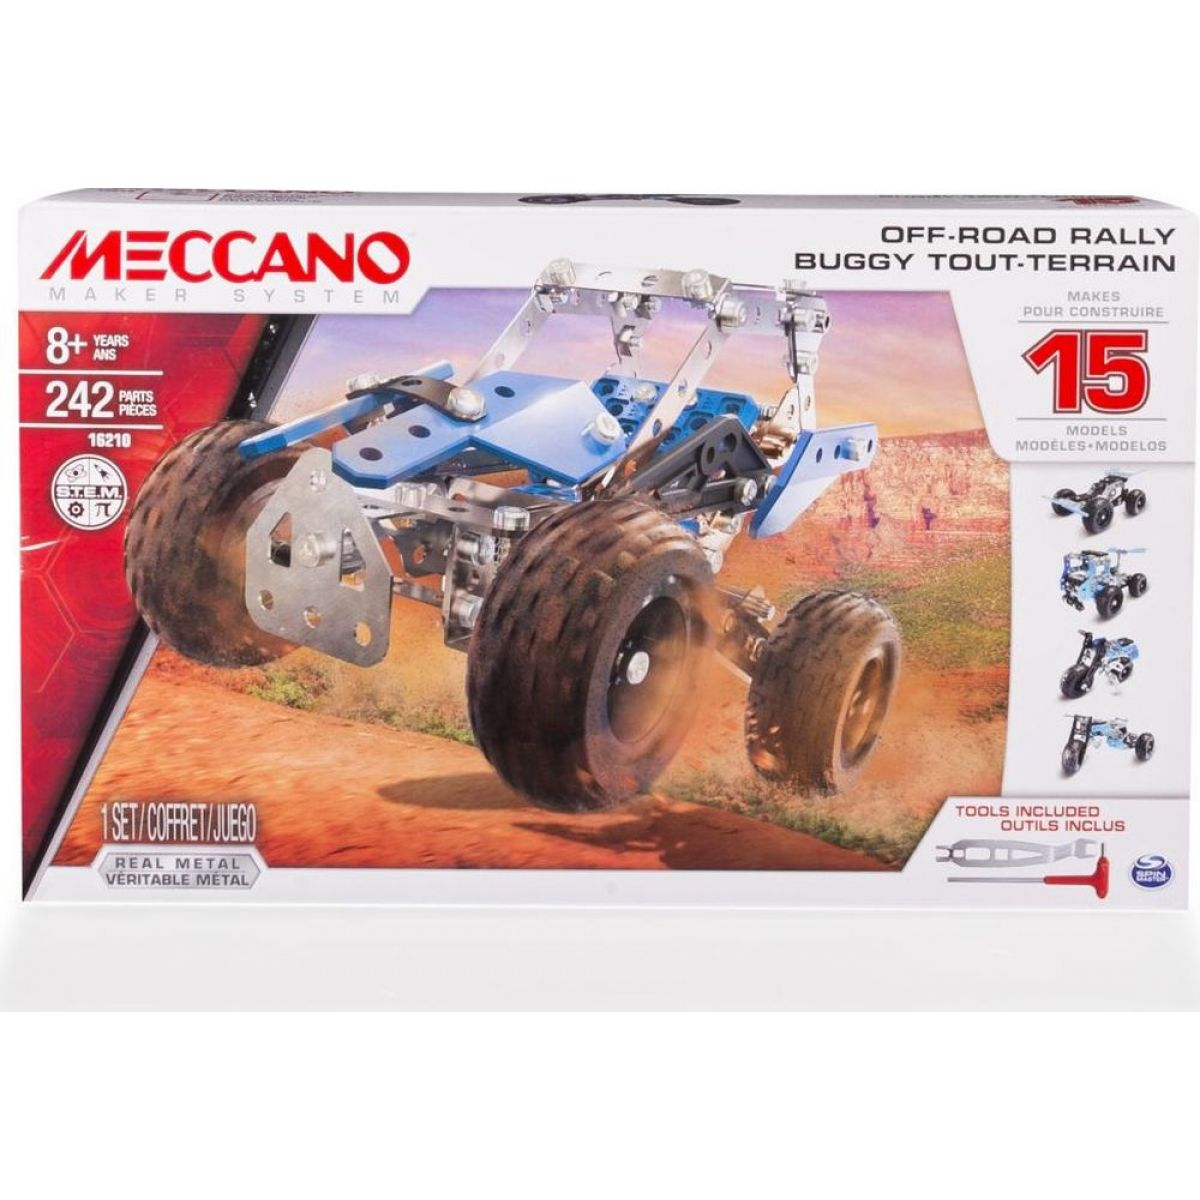 Meccano Stavebnice 15v1 Off-Road Rally